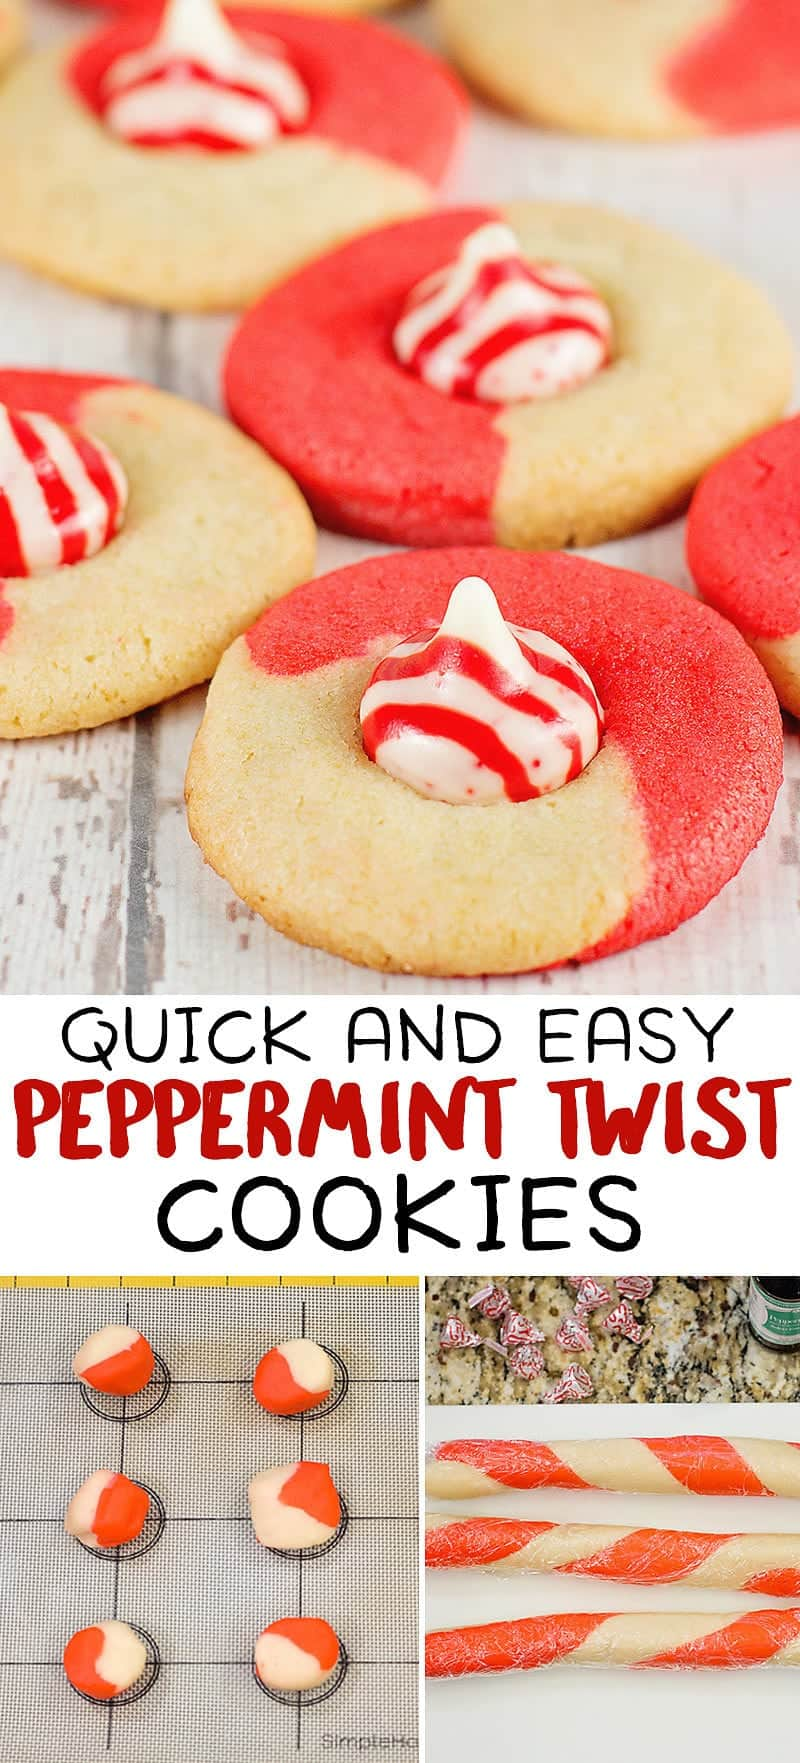 Easy Peppermint Kiss Cookie Recipe